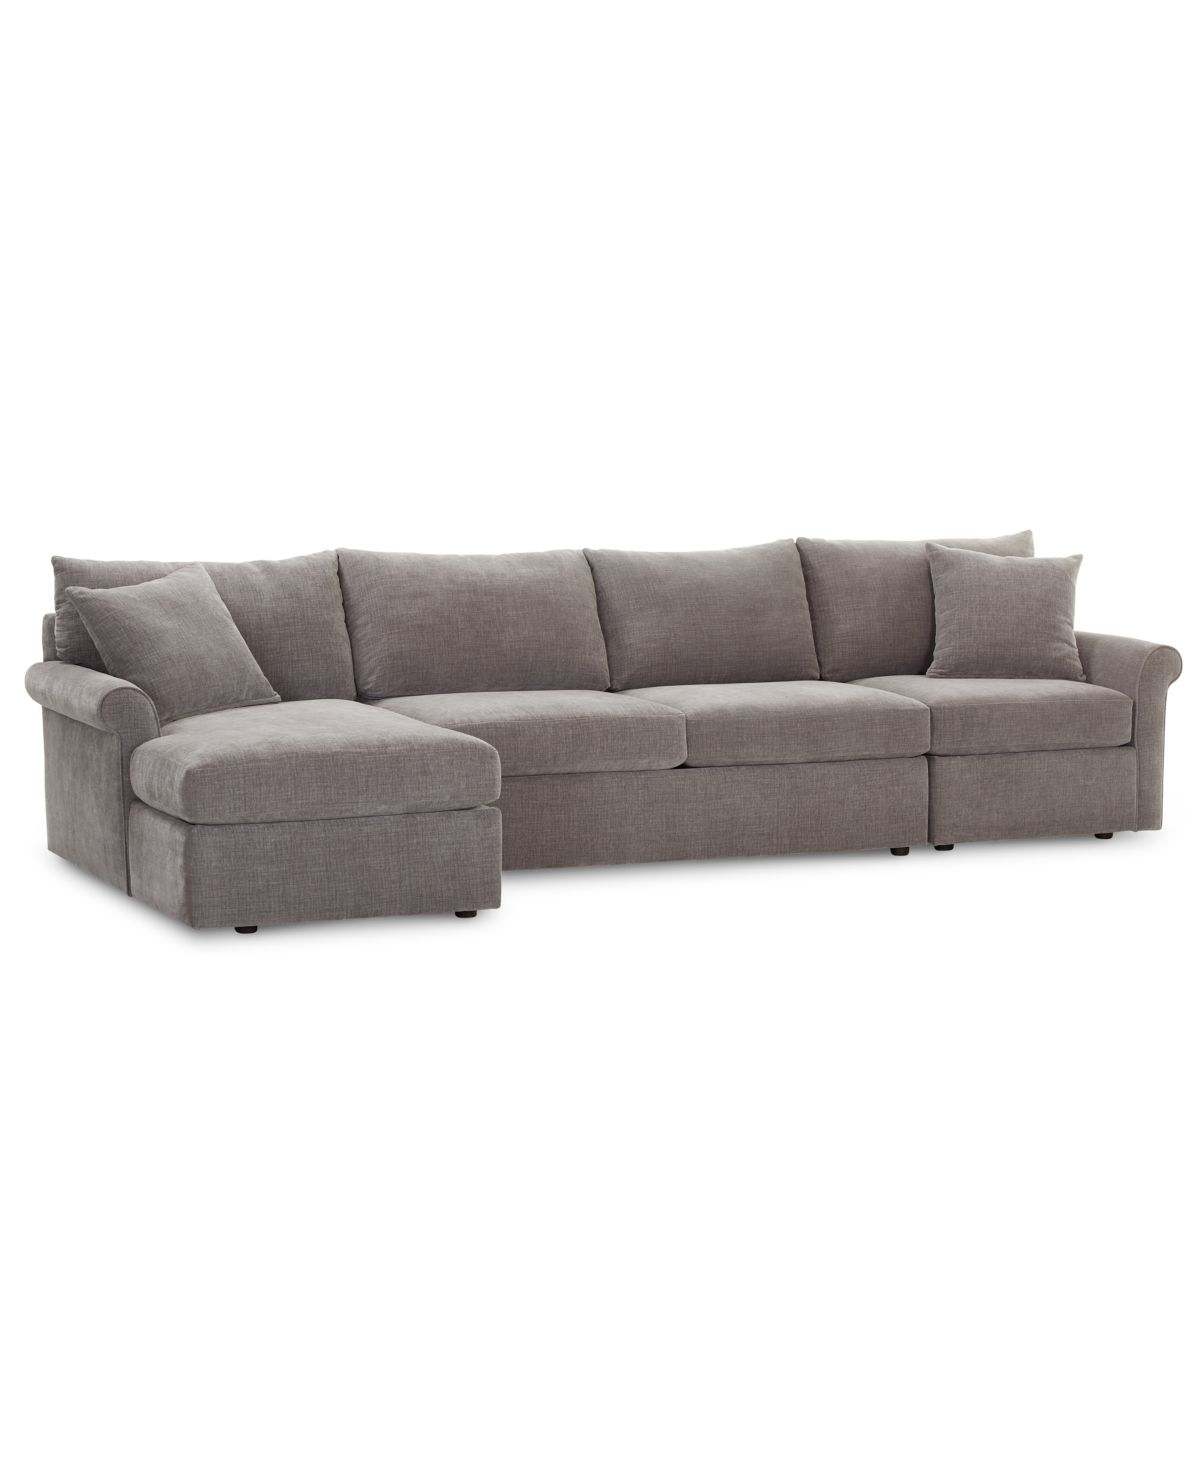 Furniture Wedport 3 Pc Fabric Sectional Sofa With Armless Apartment Sofa And Chaise Created For Macy S Reviews Furniture Macy S In 2020 Fabric Sectional Sofas Fabric Sectional Sectional